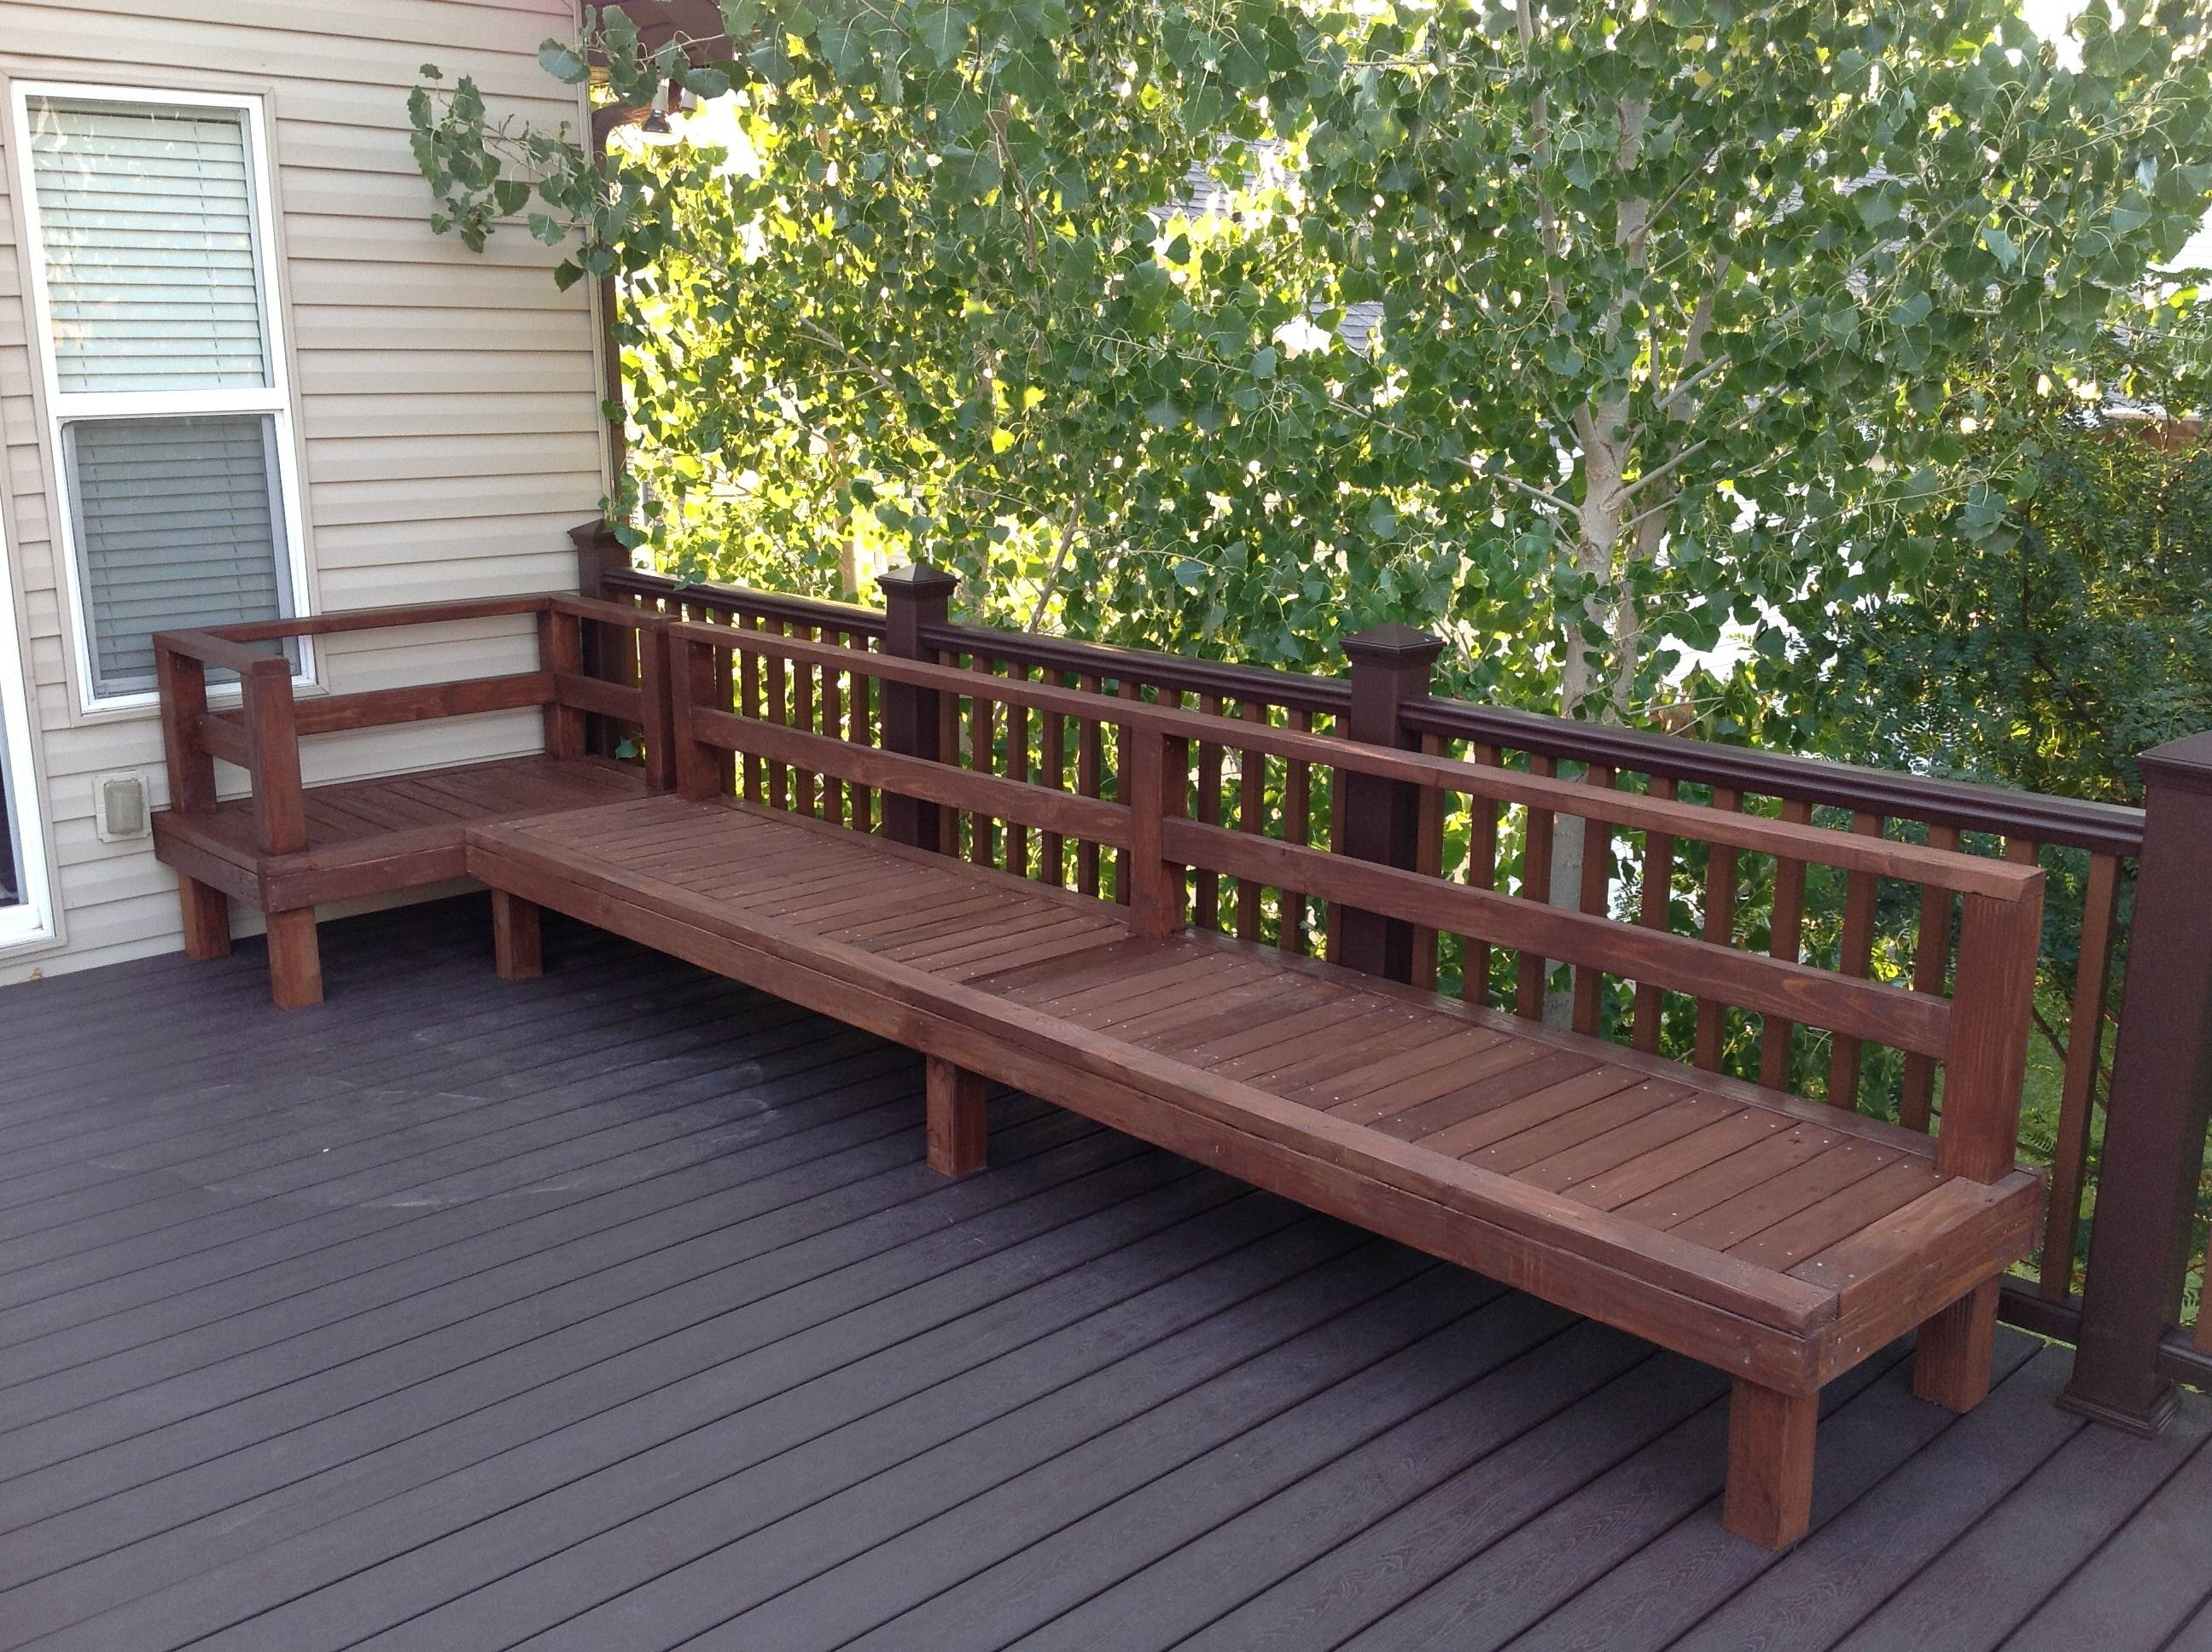 How To Waterproof Wood Furniture For Outdoors Painted Use